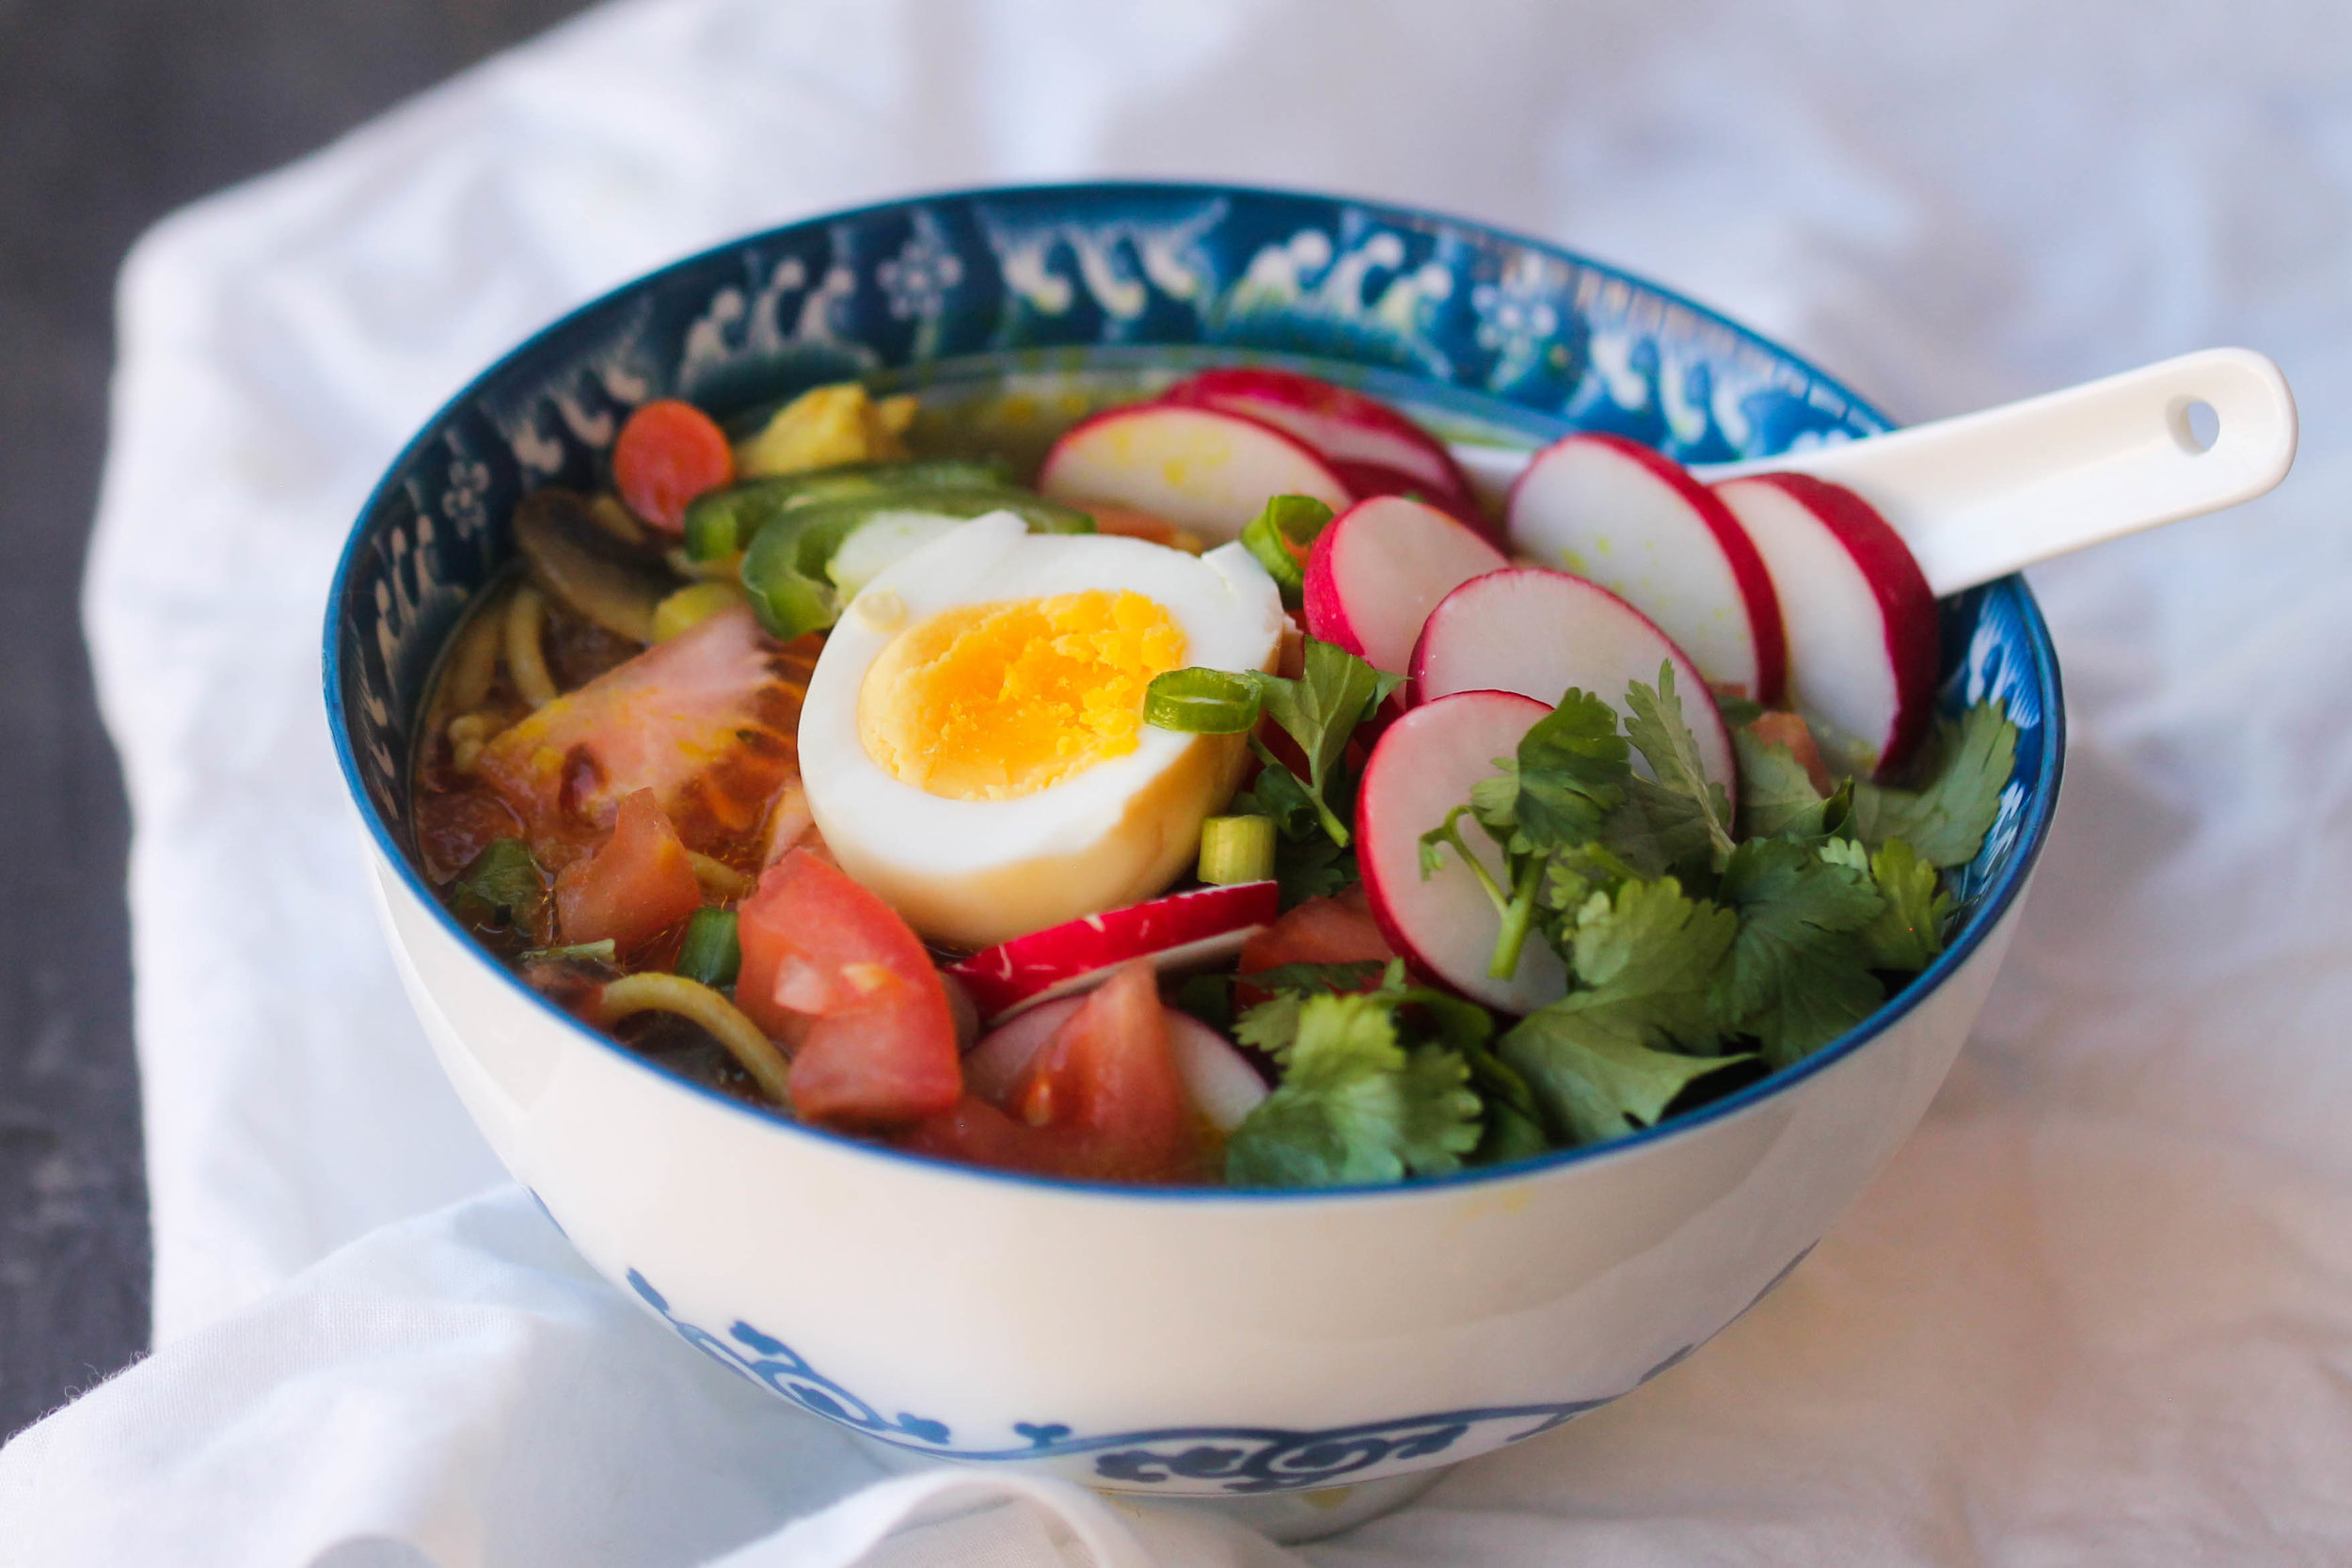 Nepali Style Thukpa is a cross between chicken noodle soup and ramen. It is a simple, wholesome, and comforting soup that is flexible to please every lifestyle.